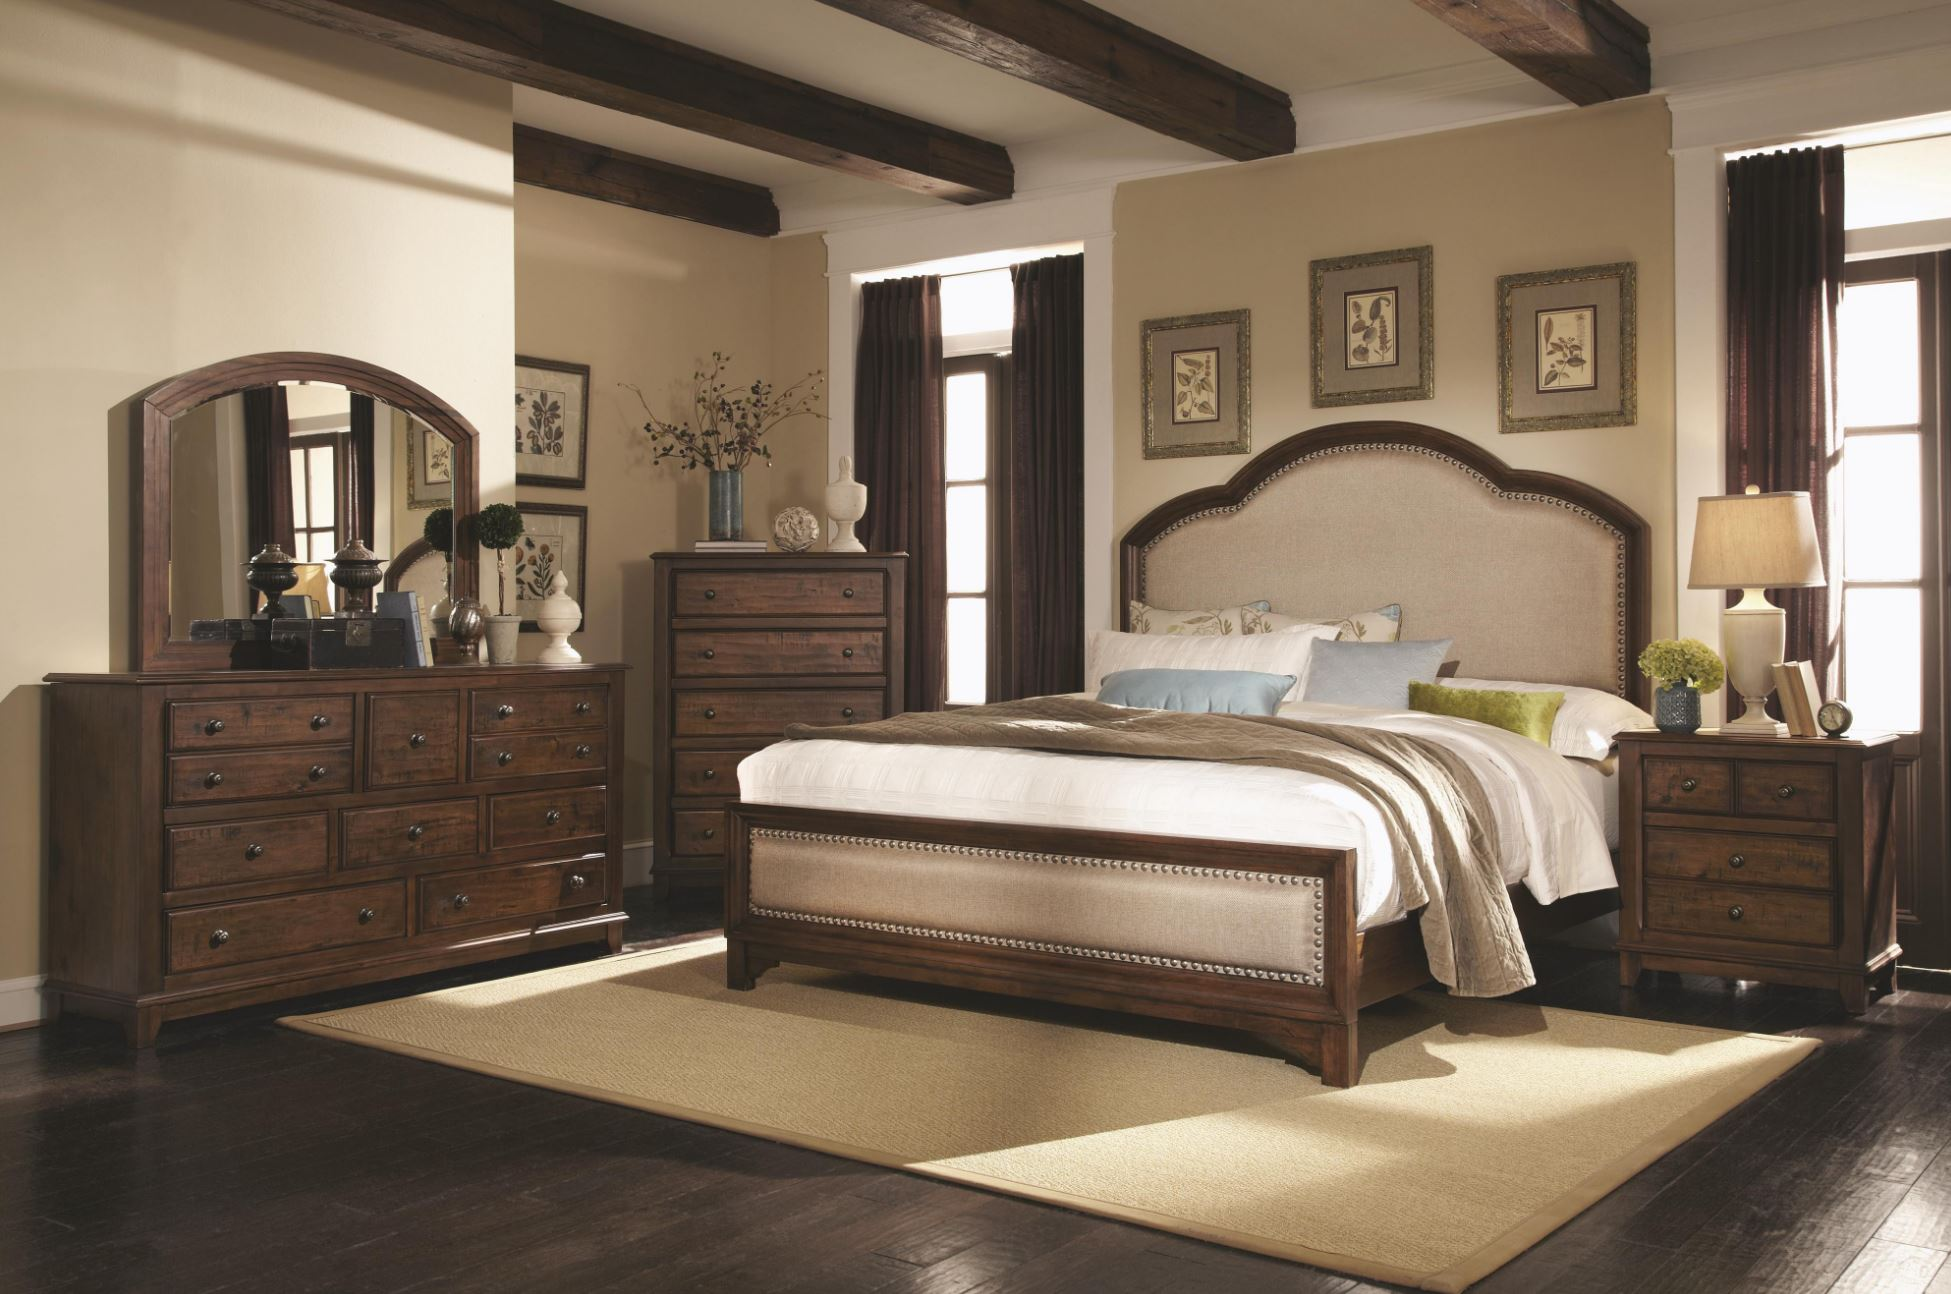 Coaster furniture trusted quality affordable prices for Affordable quality bedroom furniture